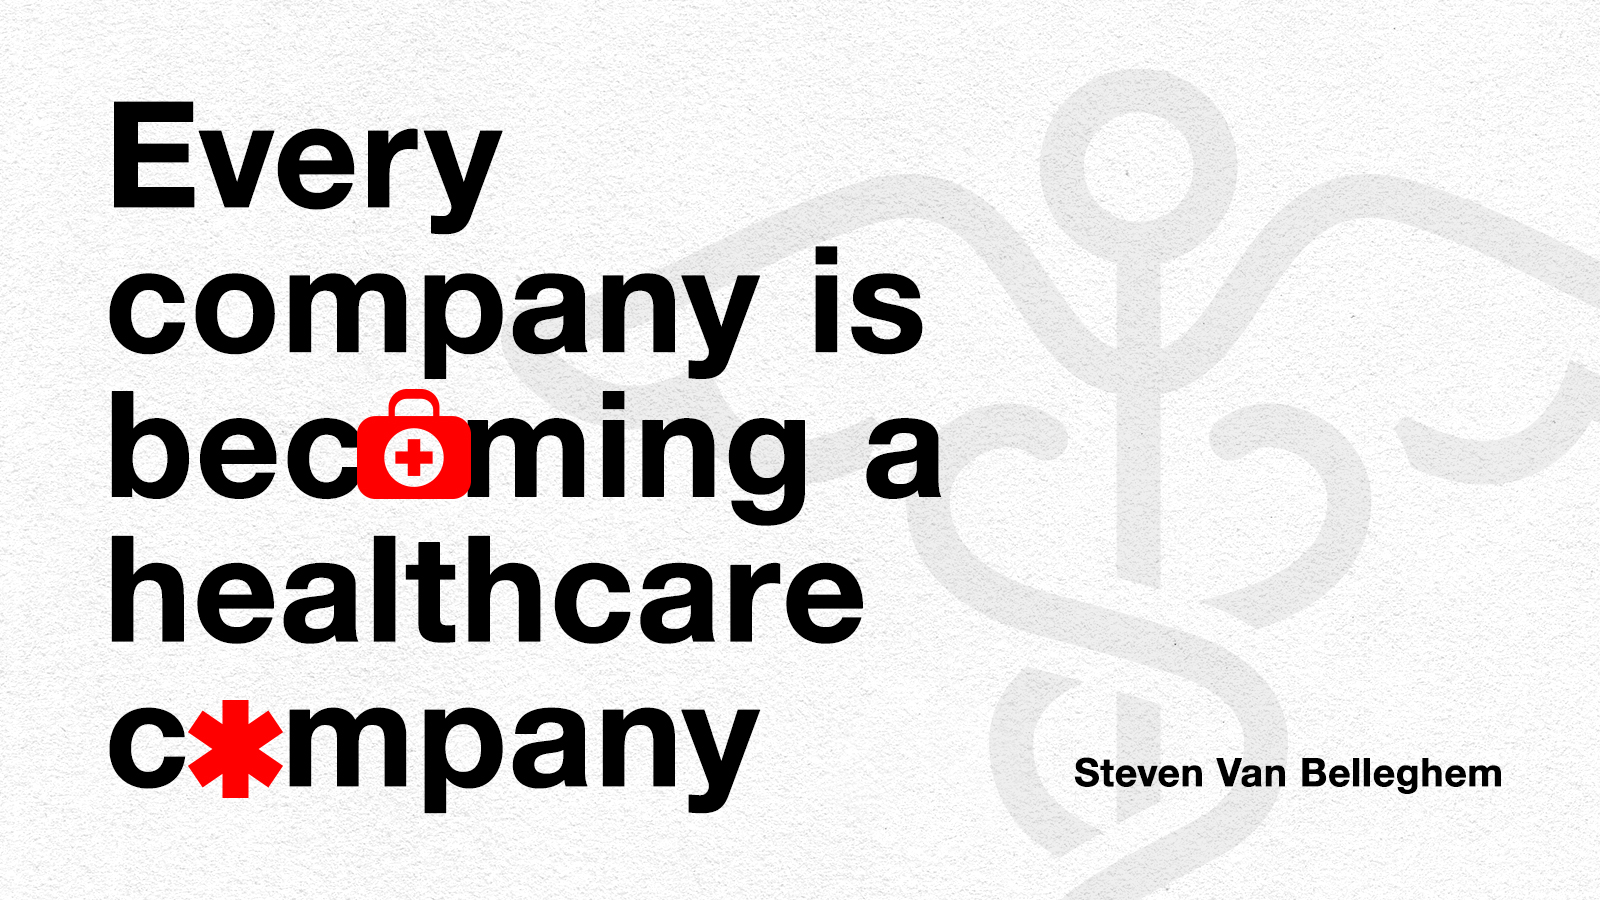 Every company is now a Healthcare company